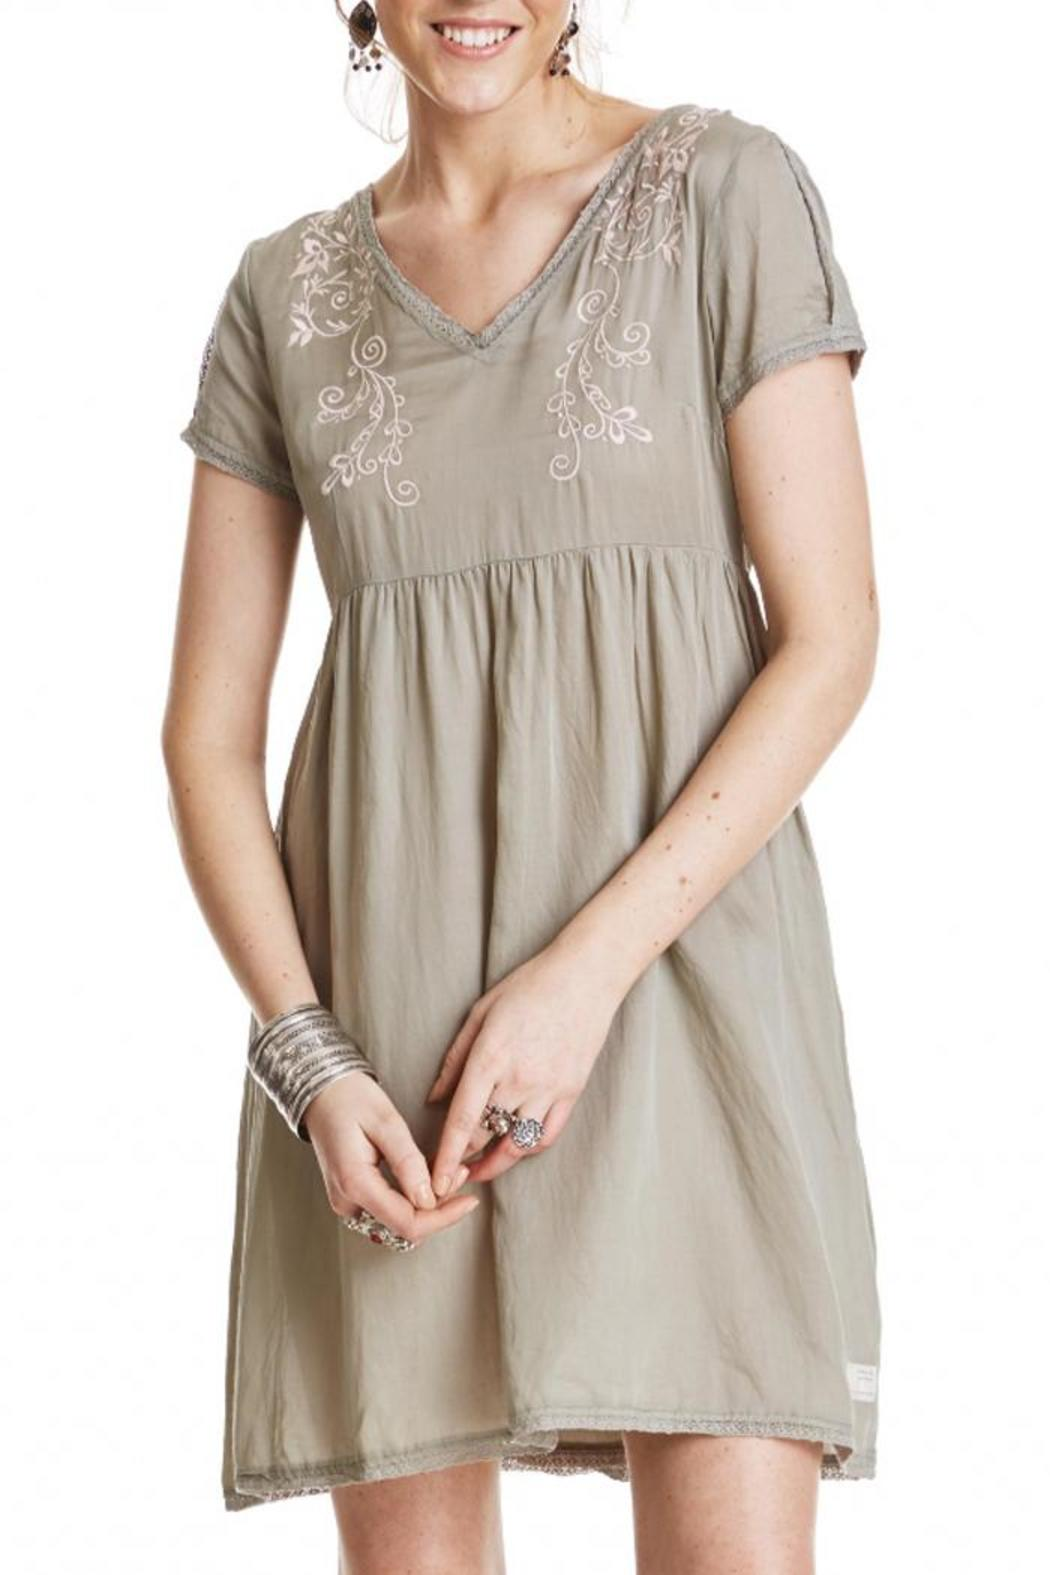 Odd Molly Sage Embroidered Dress - Main Image